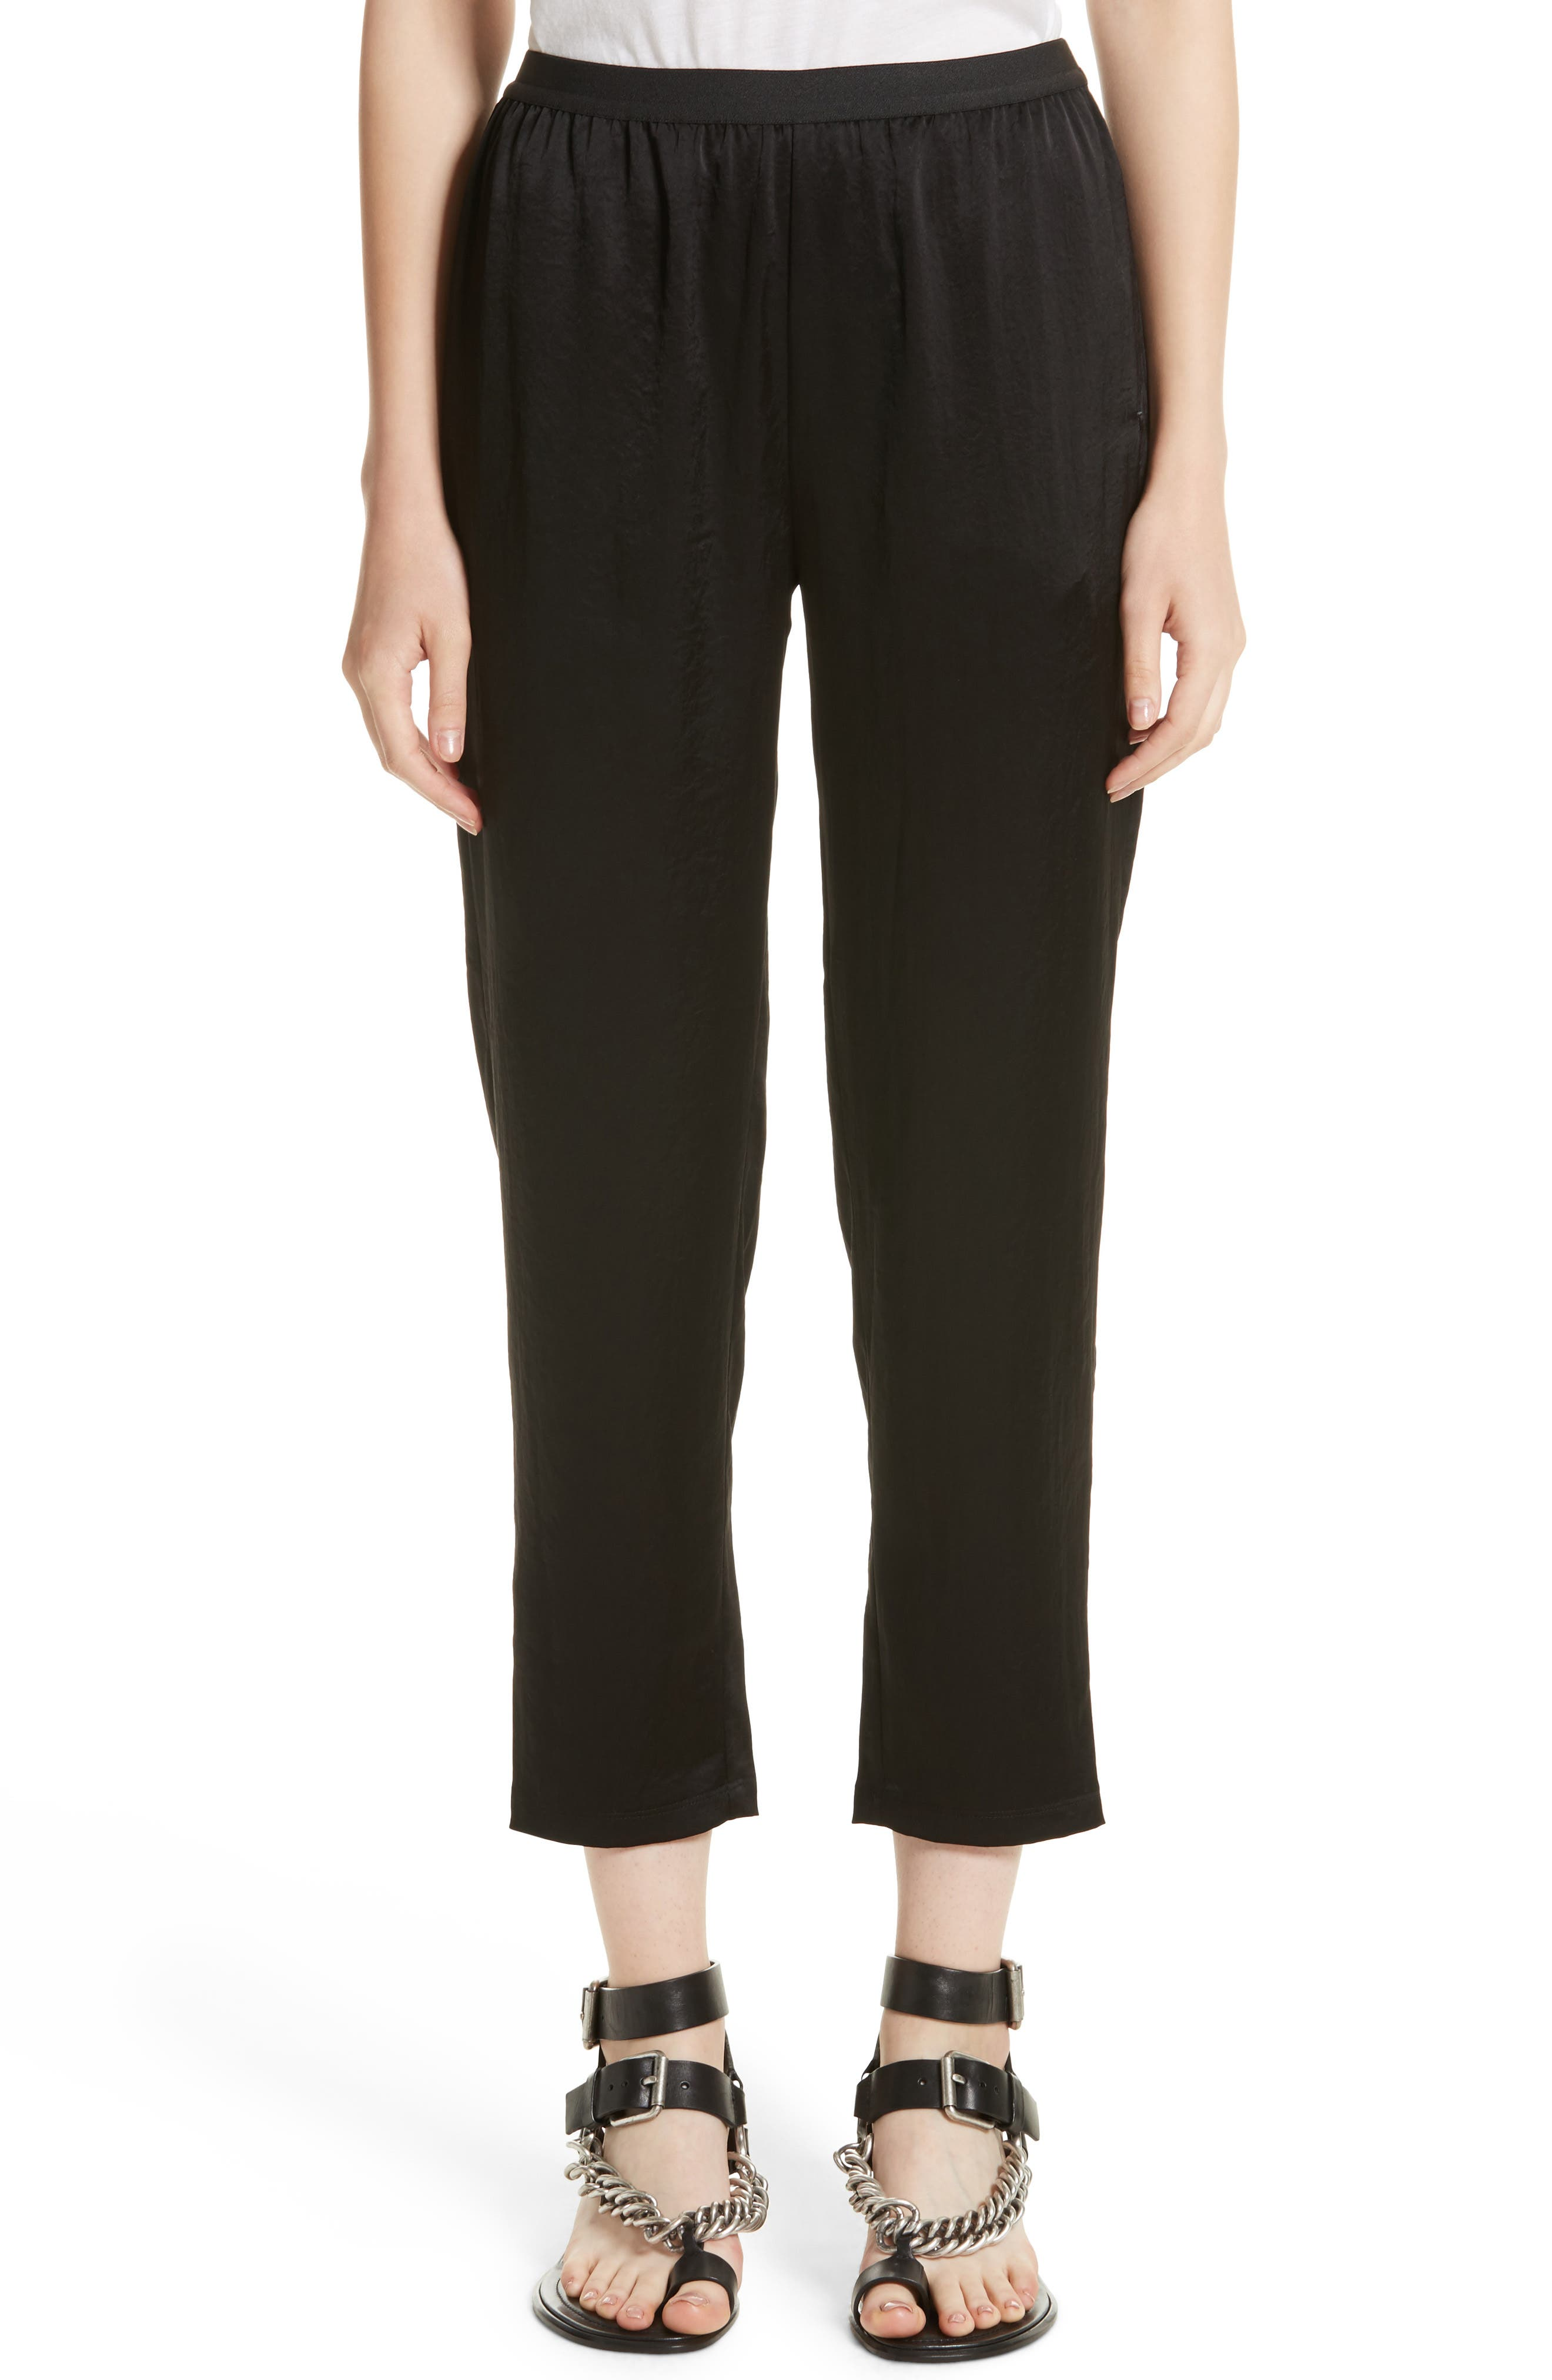 Alternate Image 1 Selected - T by Alexander Wang Wash N Go Woven Pants